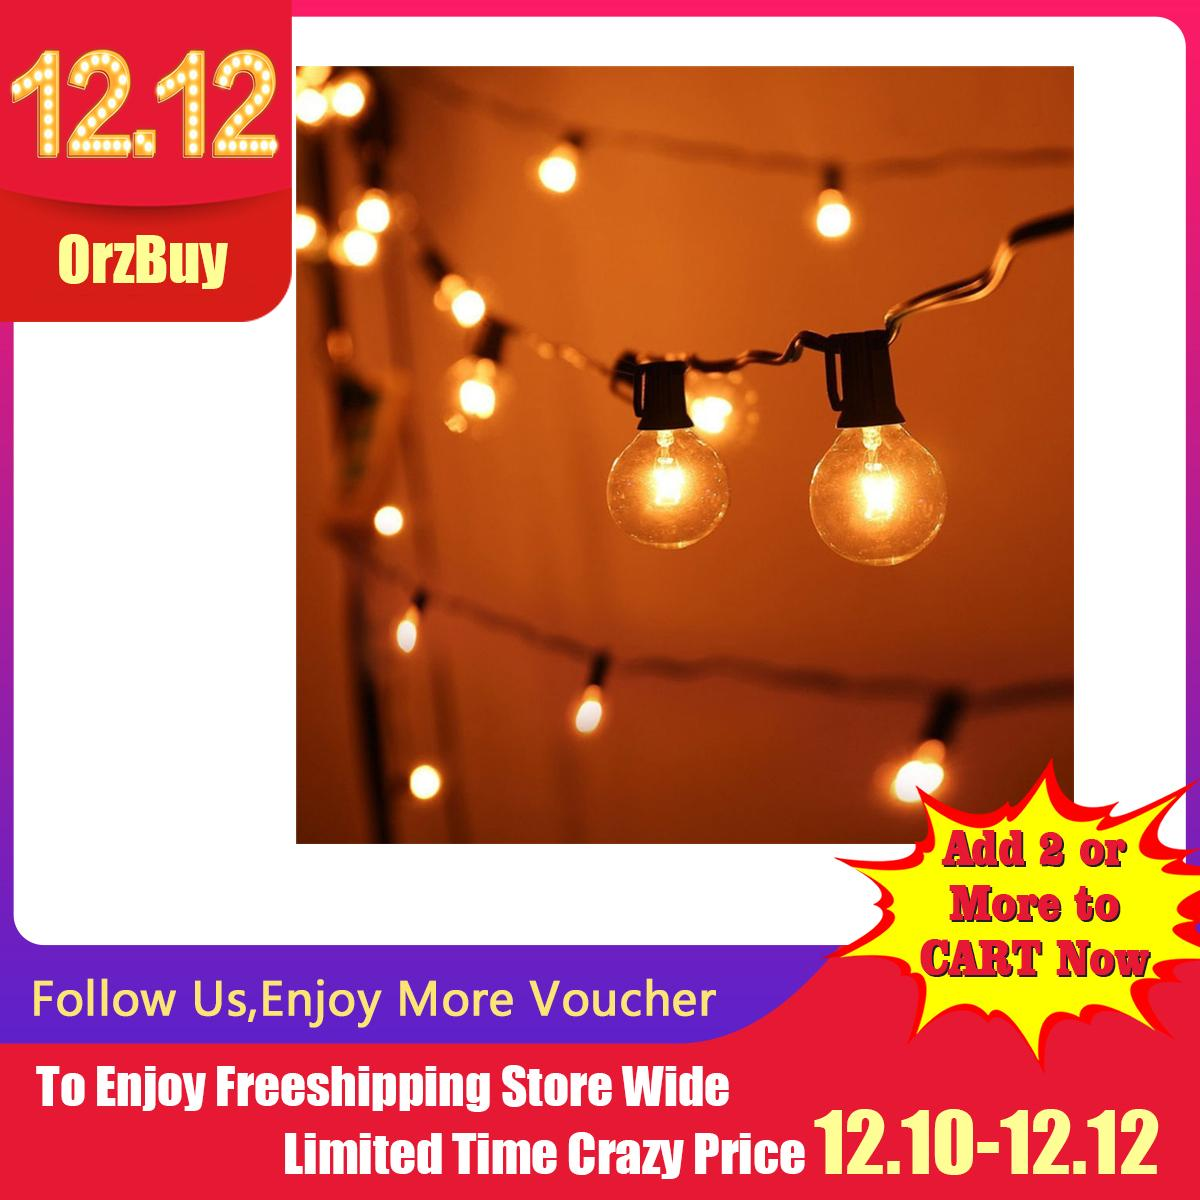 OrzBuy Outdoor Garden String Lights, 25ft G40 Garden Patio Outside String Lights,Waterproof Indoor/Outdoor String Lights, Great Garden Terrace Patio Outside Xmas Lights (25 Bulbs,3 Replacement Bulbs) - intl